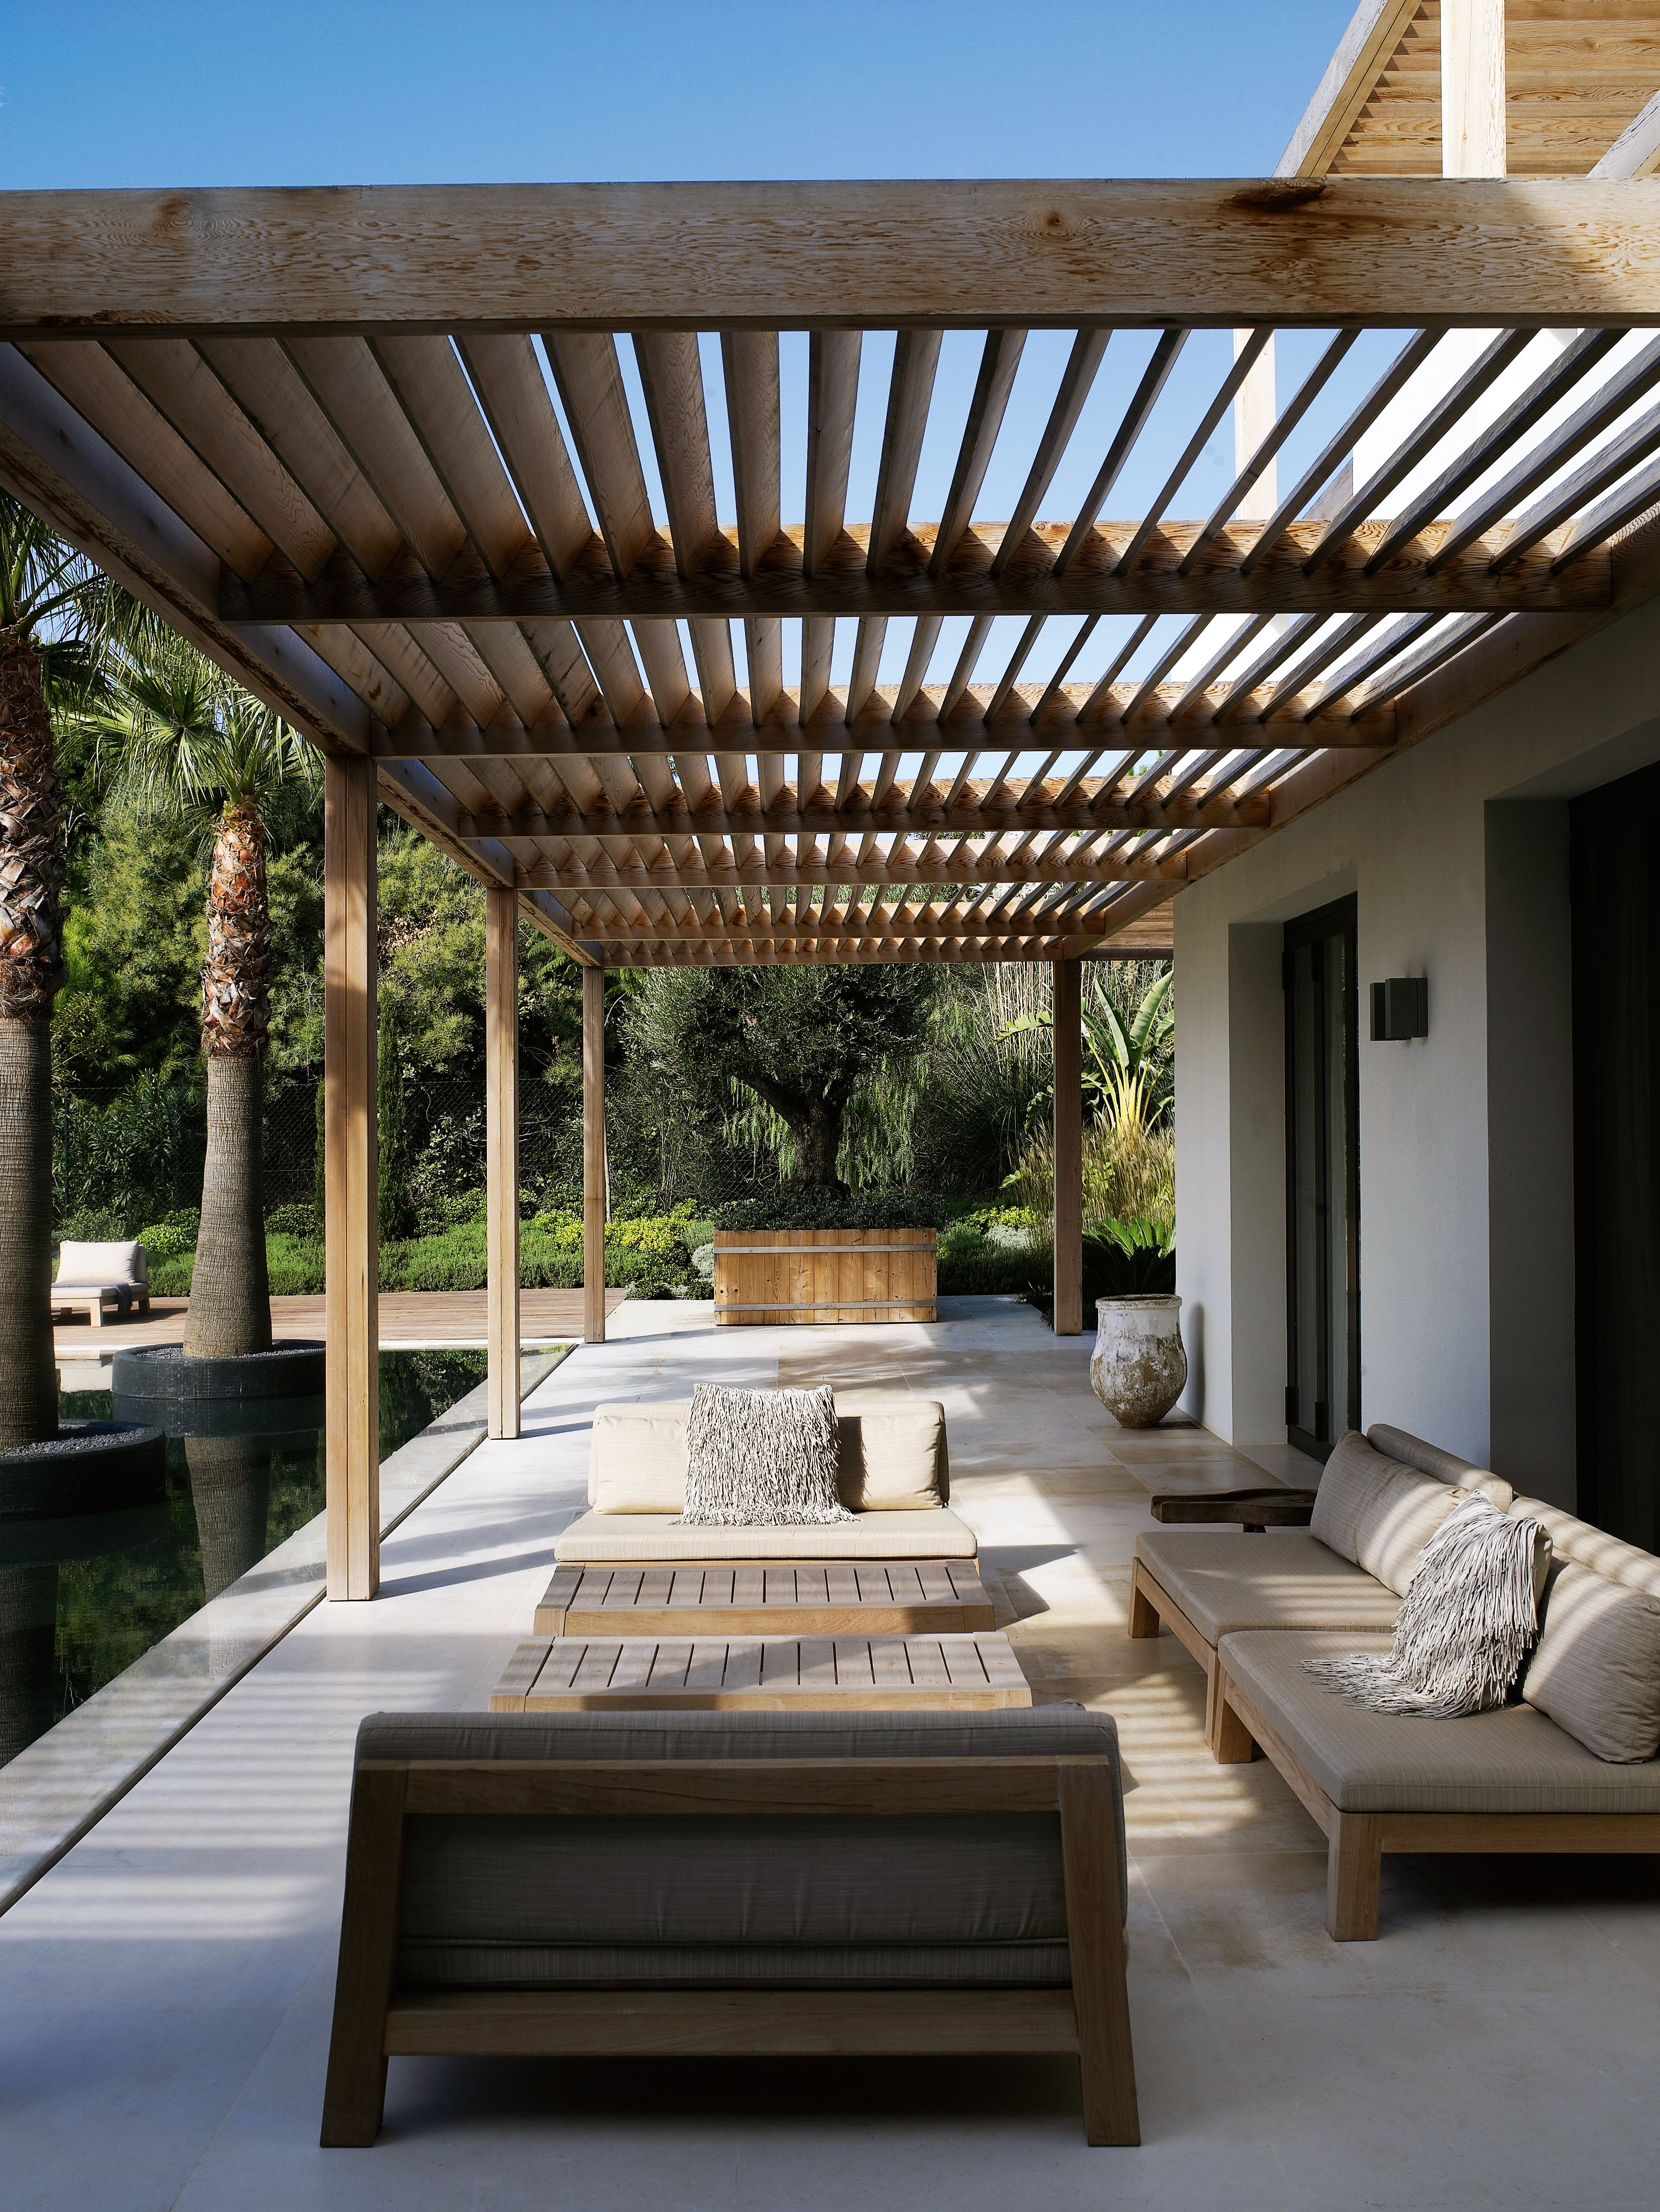 contemporary patio design with slatted roof beams. more on